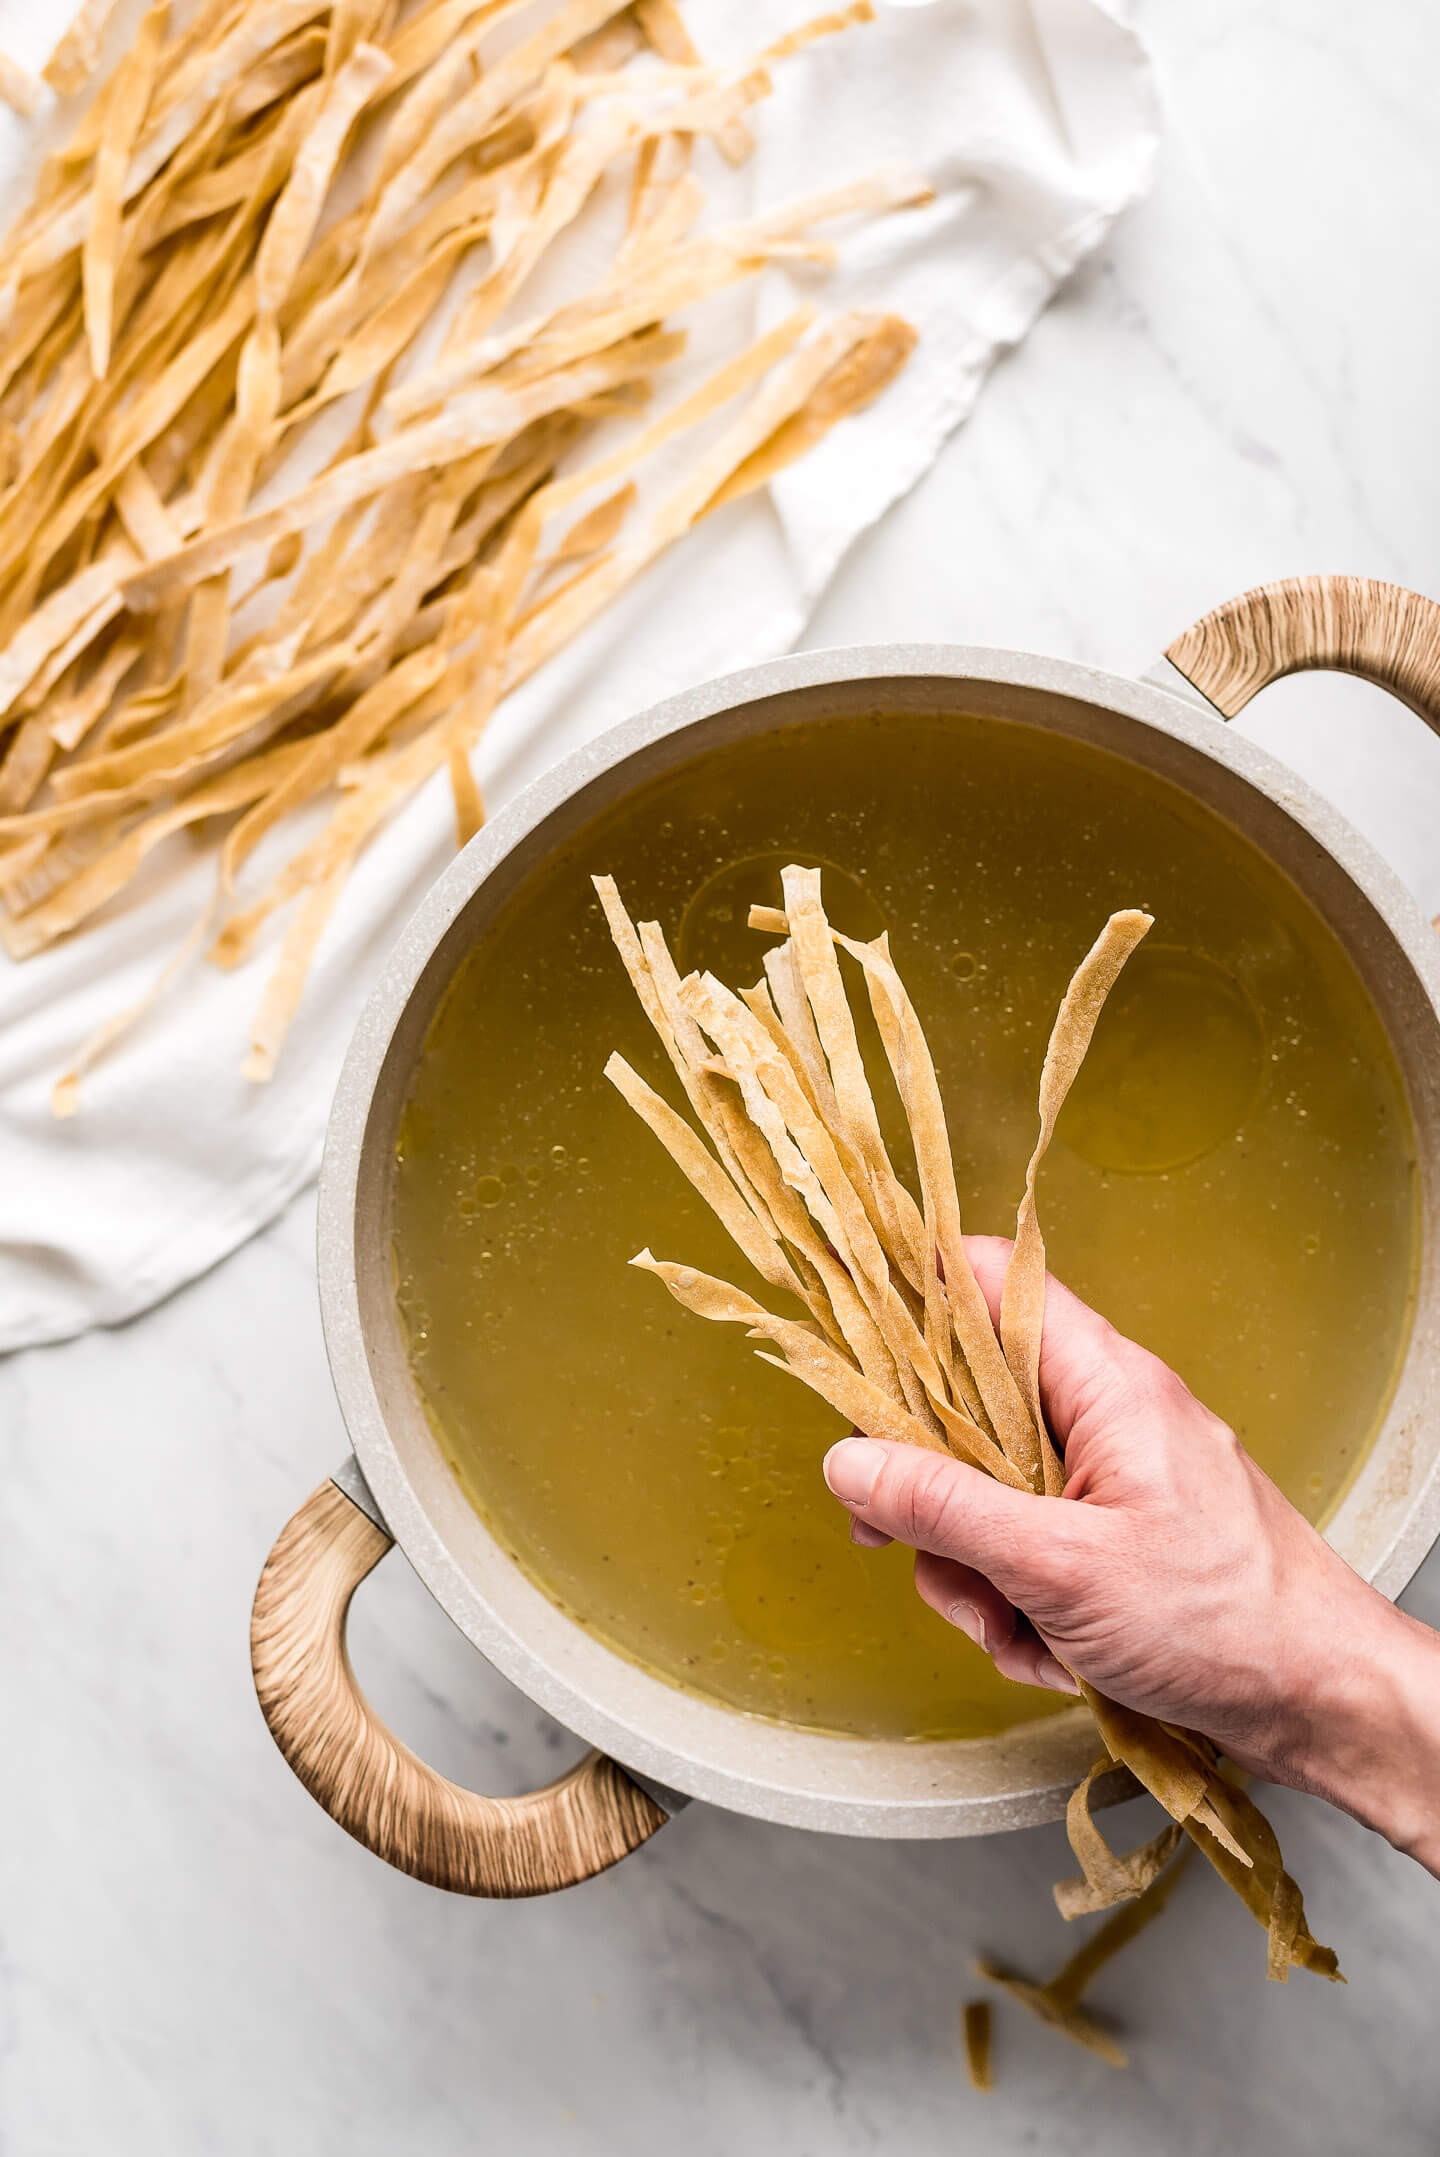 A hand holding a bunch of dried egg noodles over a pot of broth.